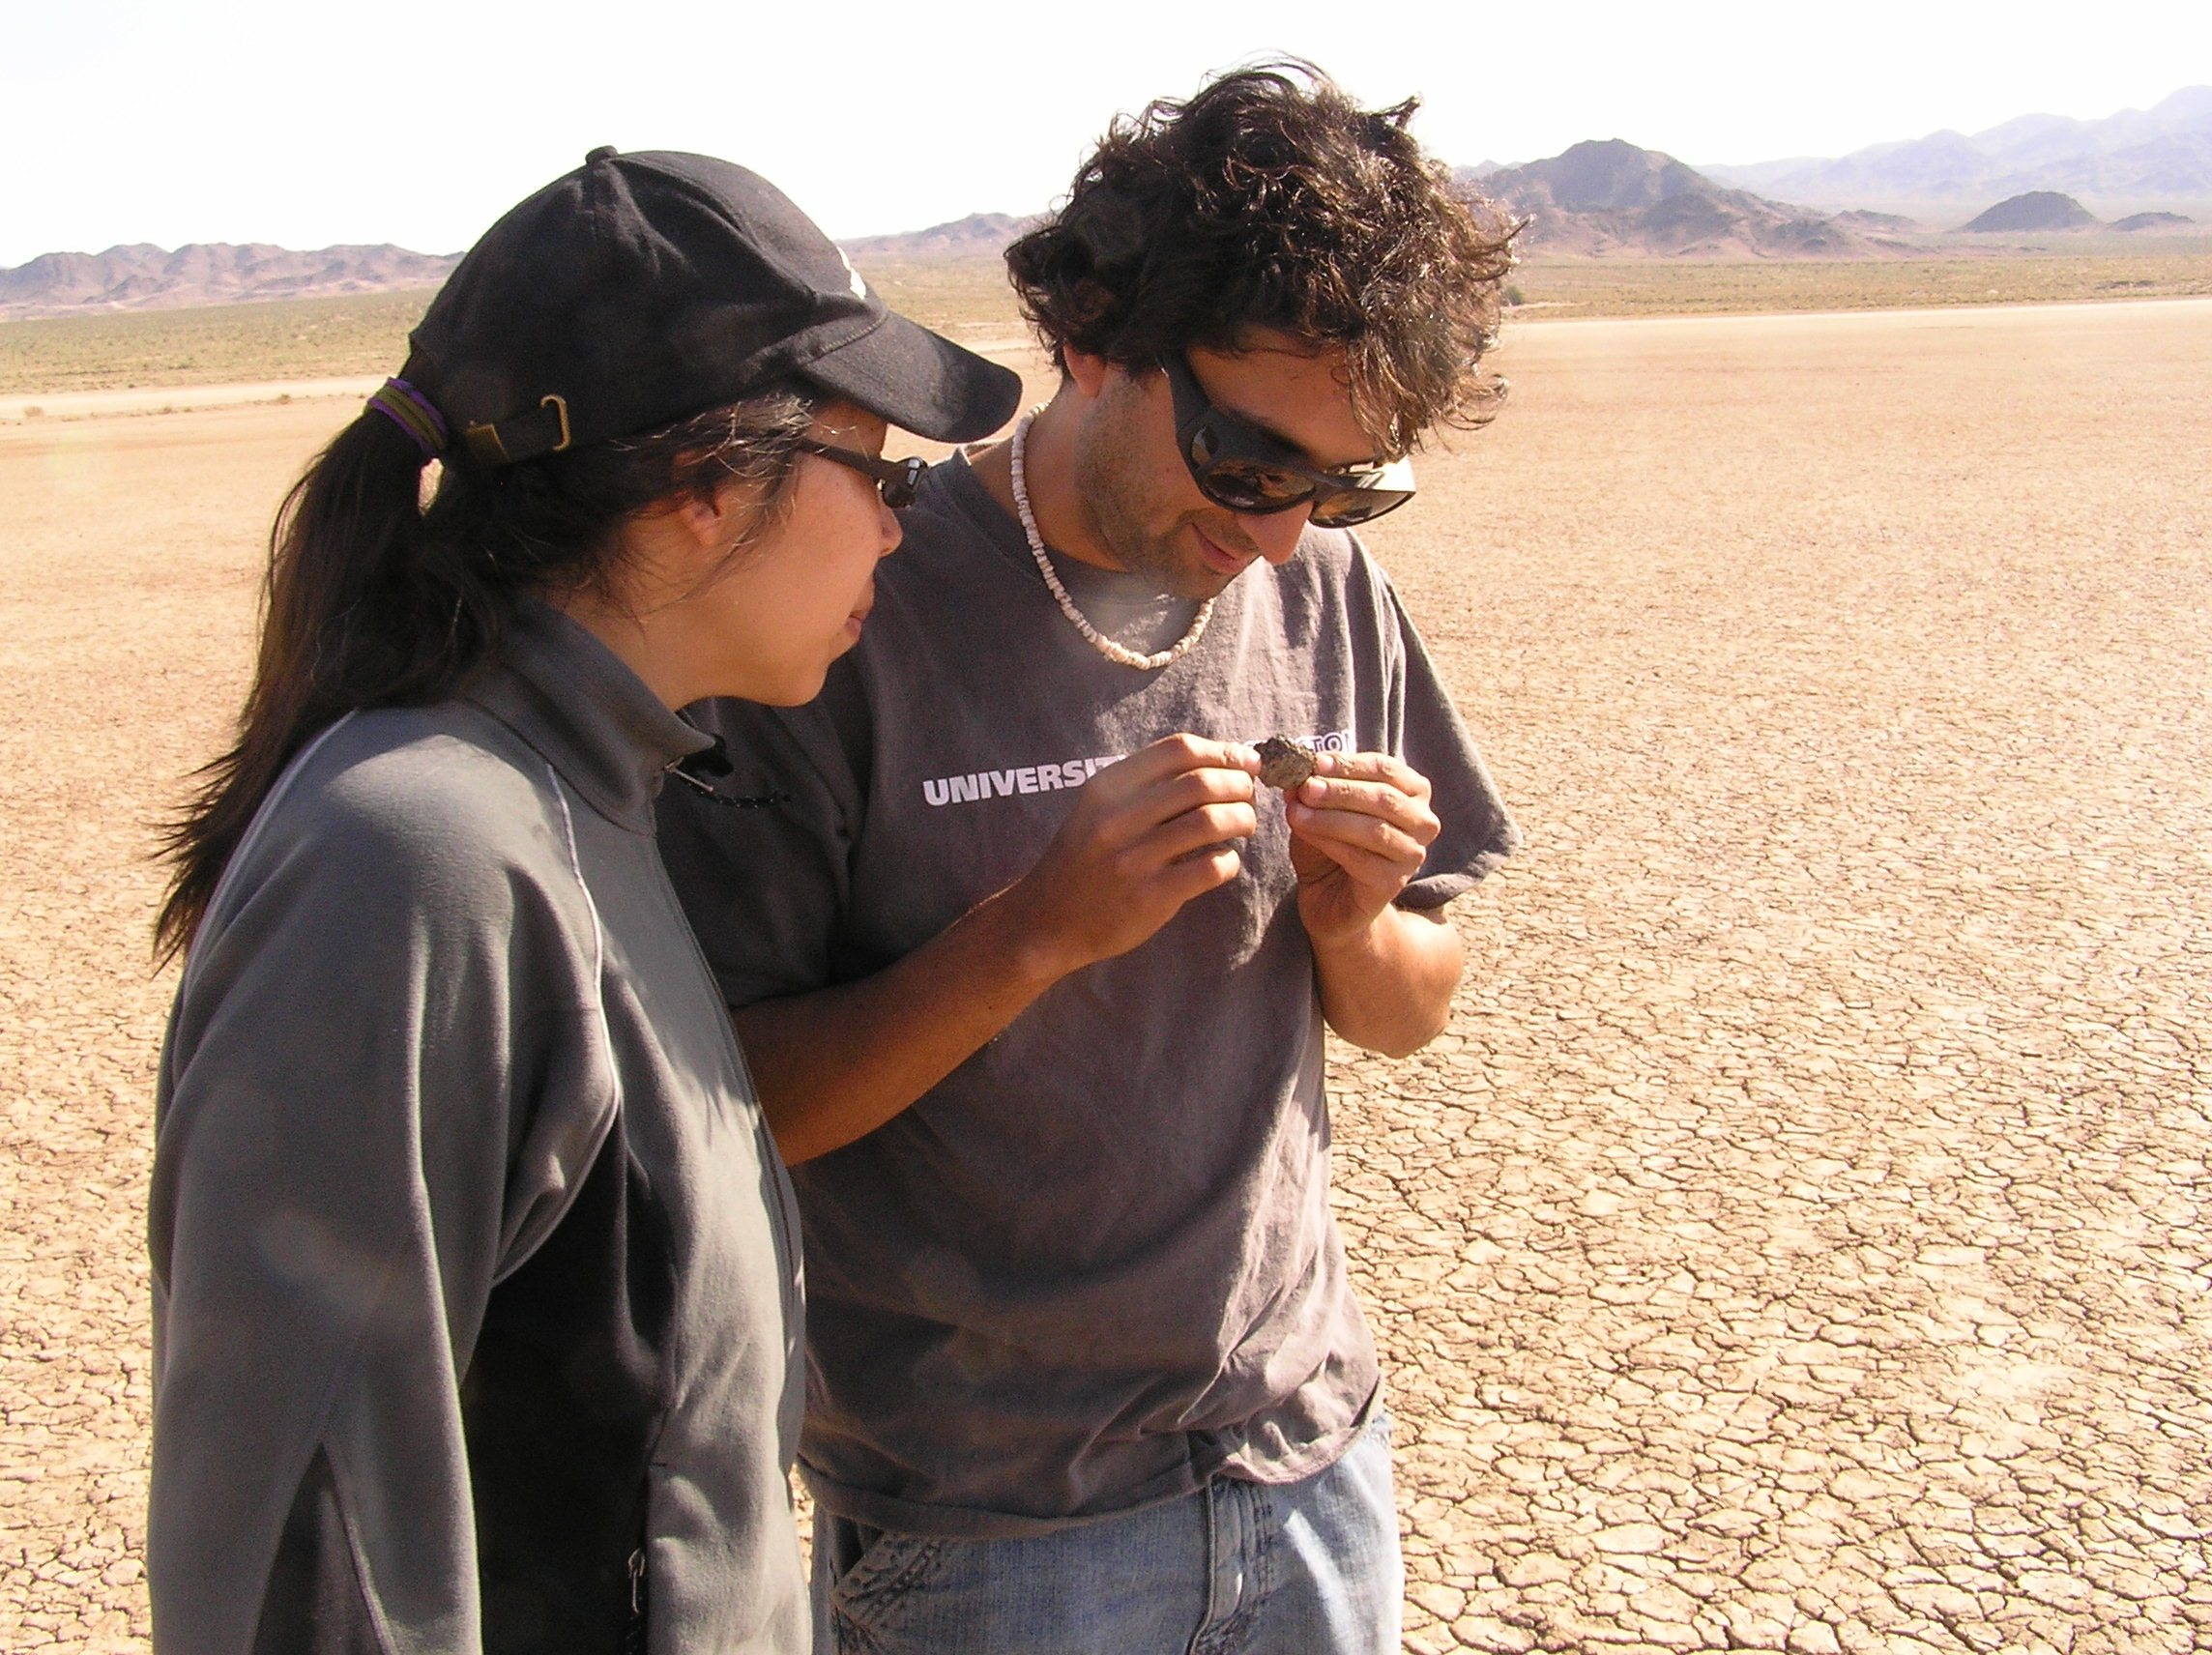 Graduate student Rika Anderson (Univ. of Washington) and Postdoc Sanjoy Som (NASA Ames) examine a rock for cryptoendolithic cyanobacteria in the Mojave Desert.